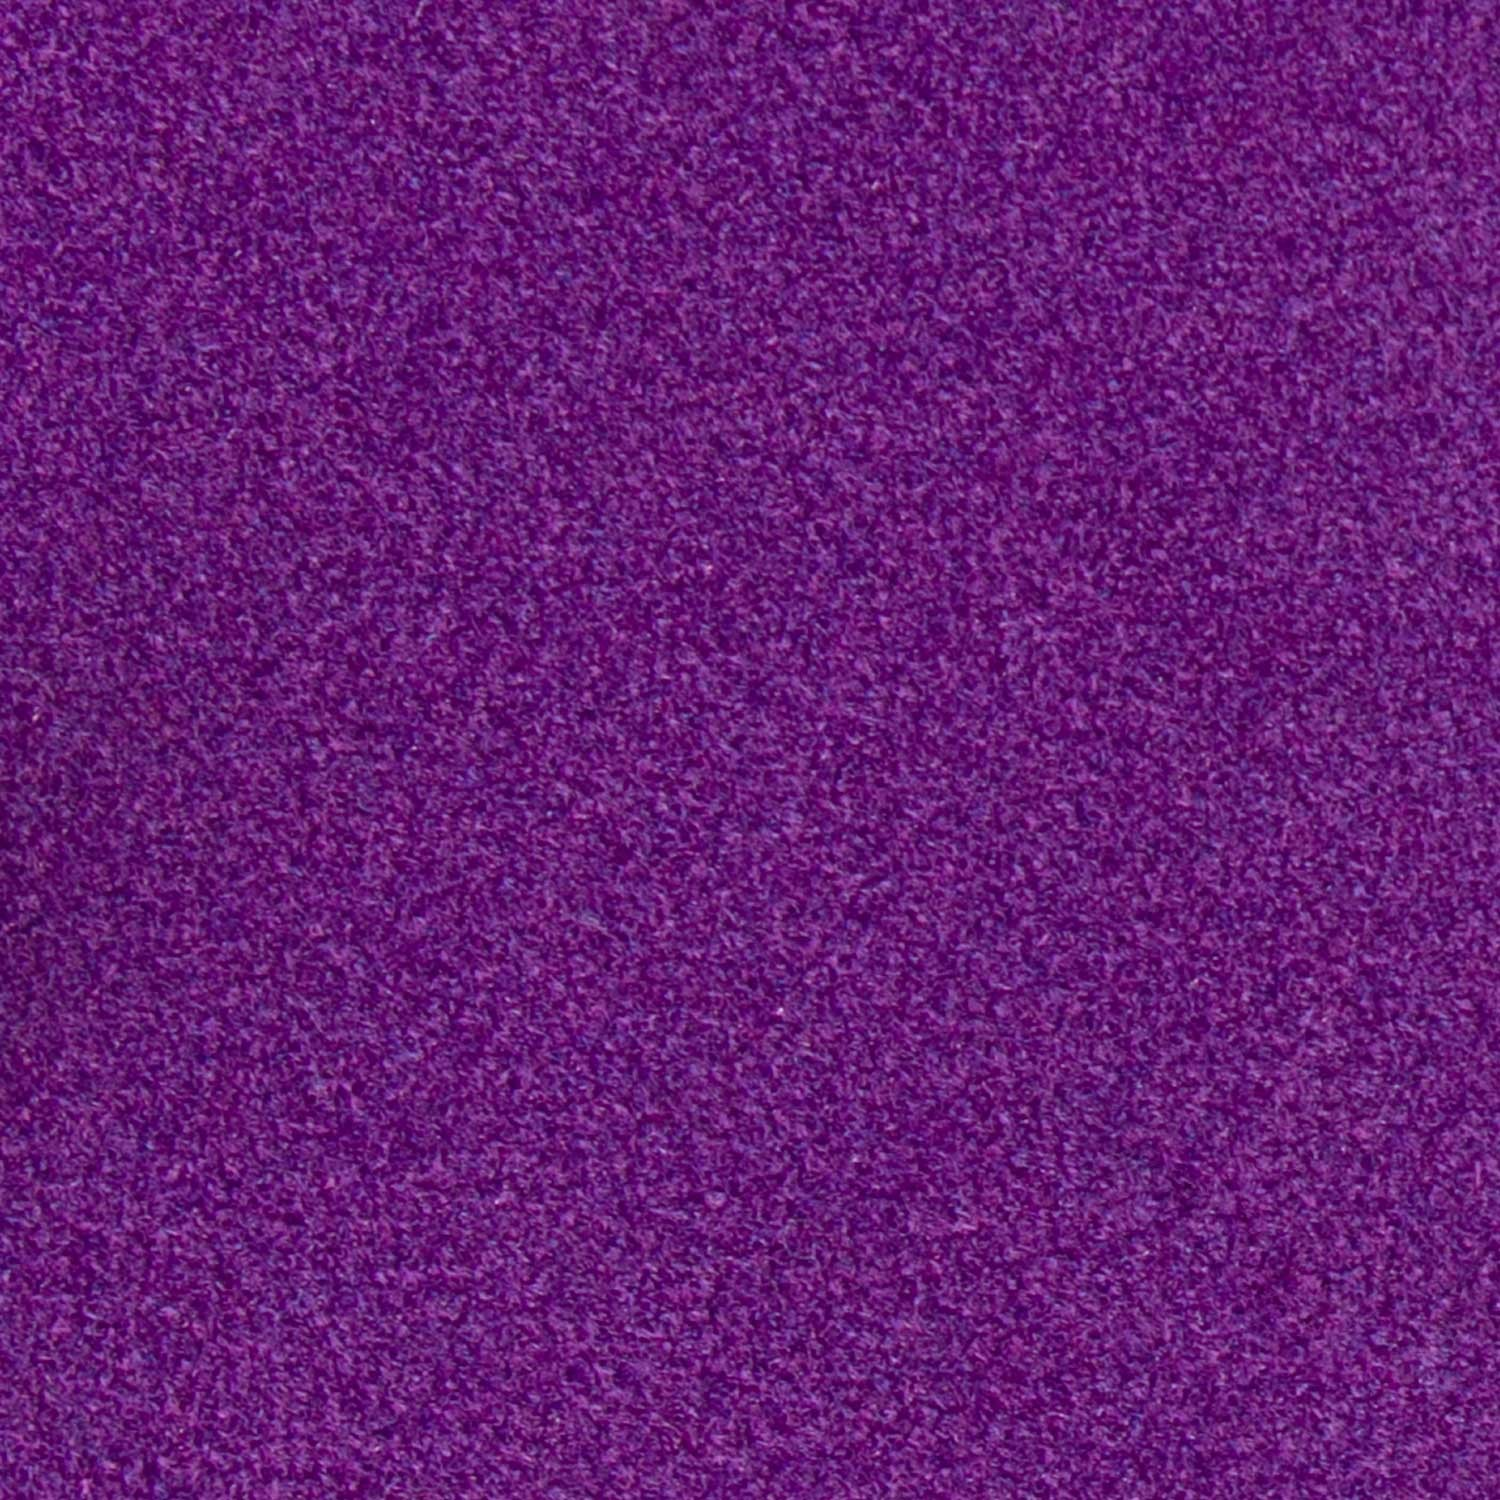 StripFlock® Pro Purple